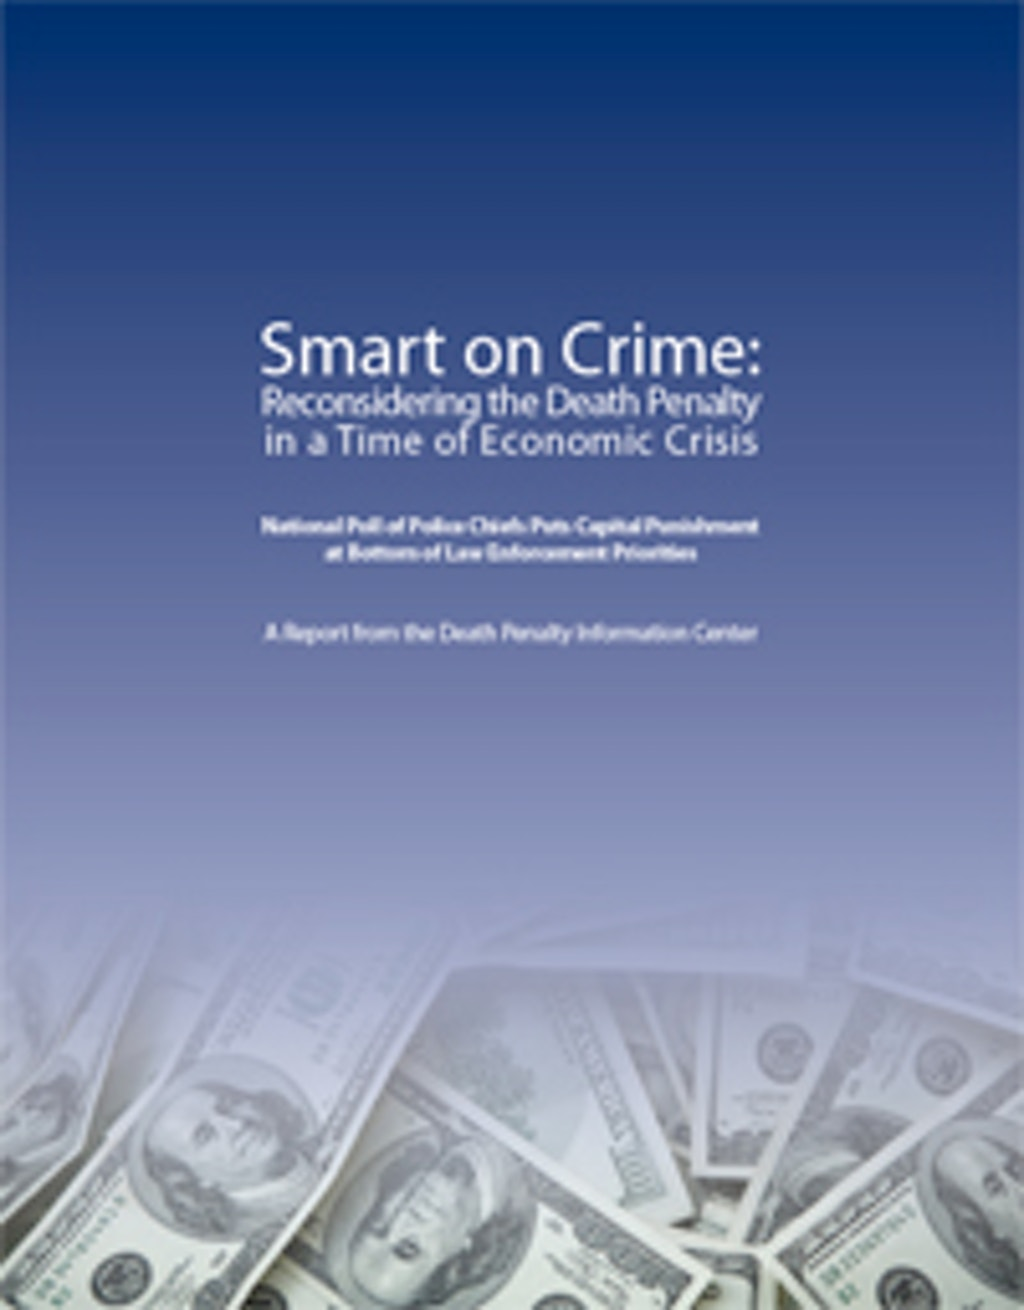 DPIC Releases New Report on Costs of the Death Penalty and Police Chiefs' Views